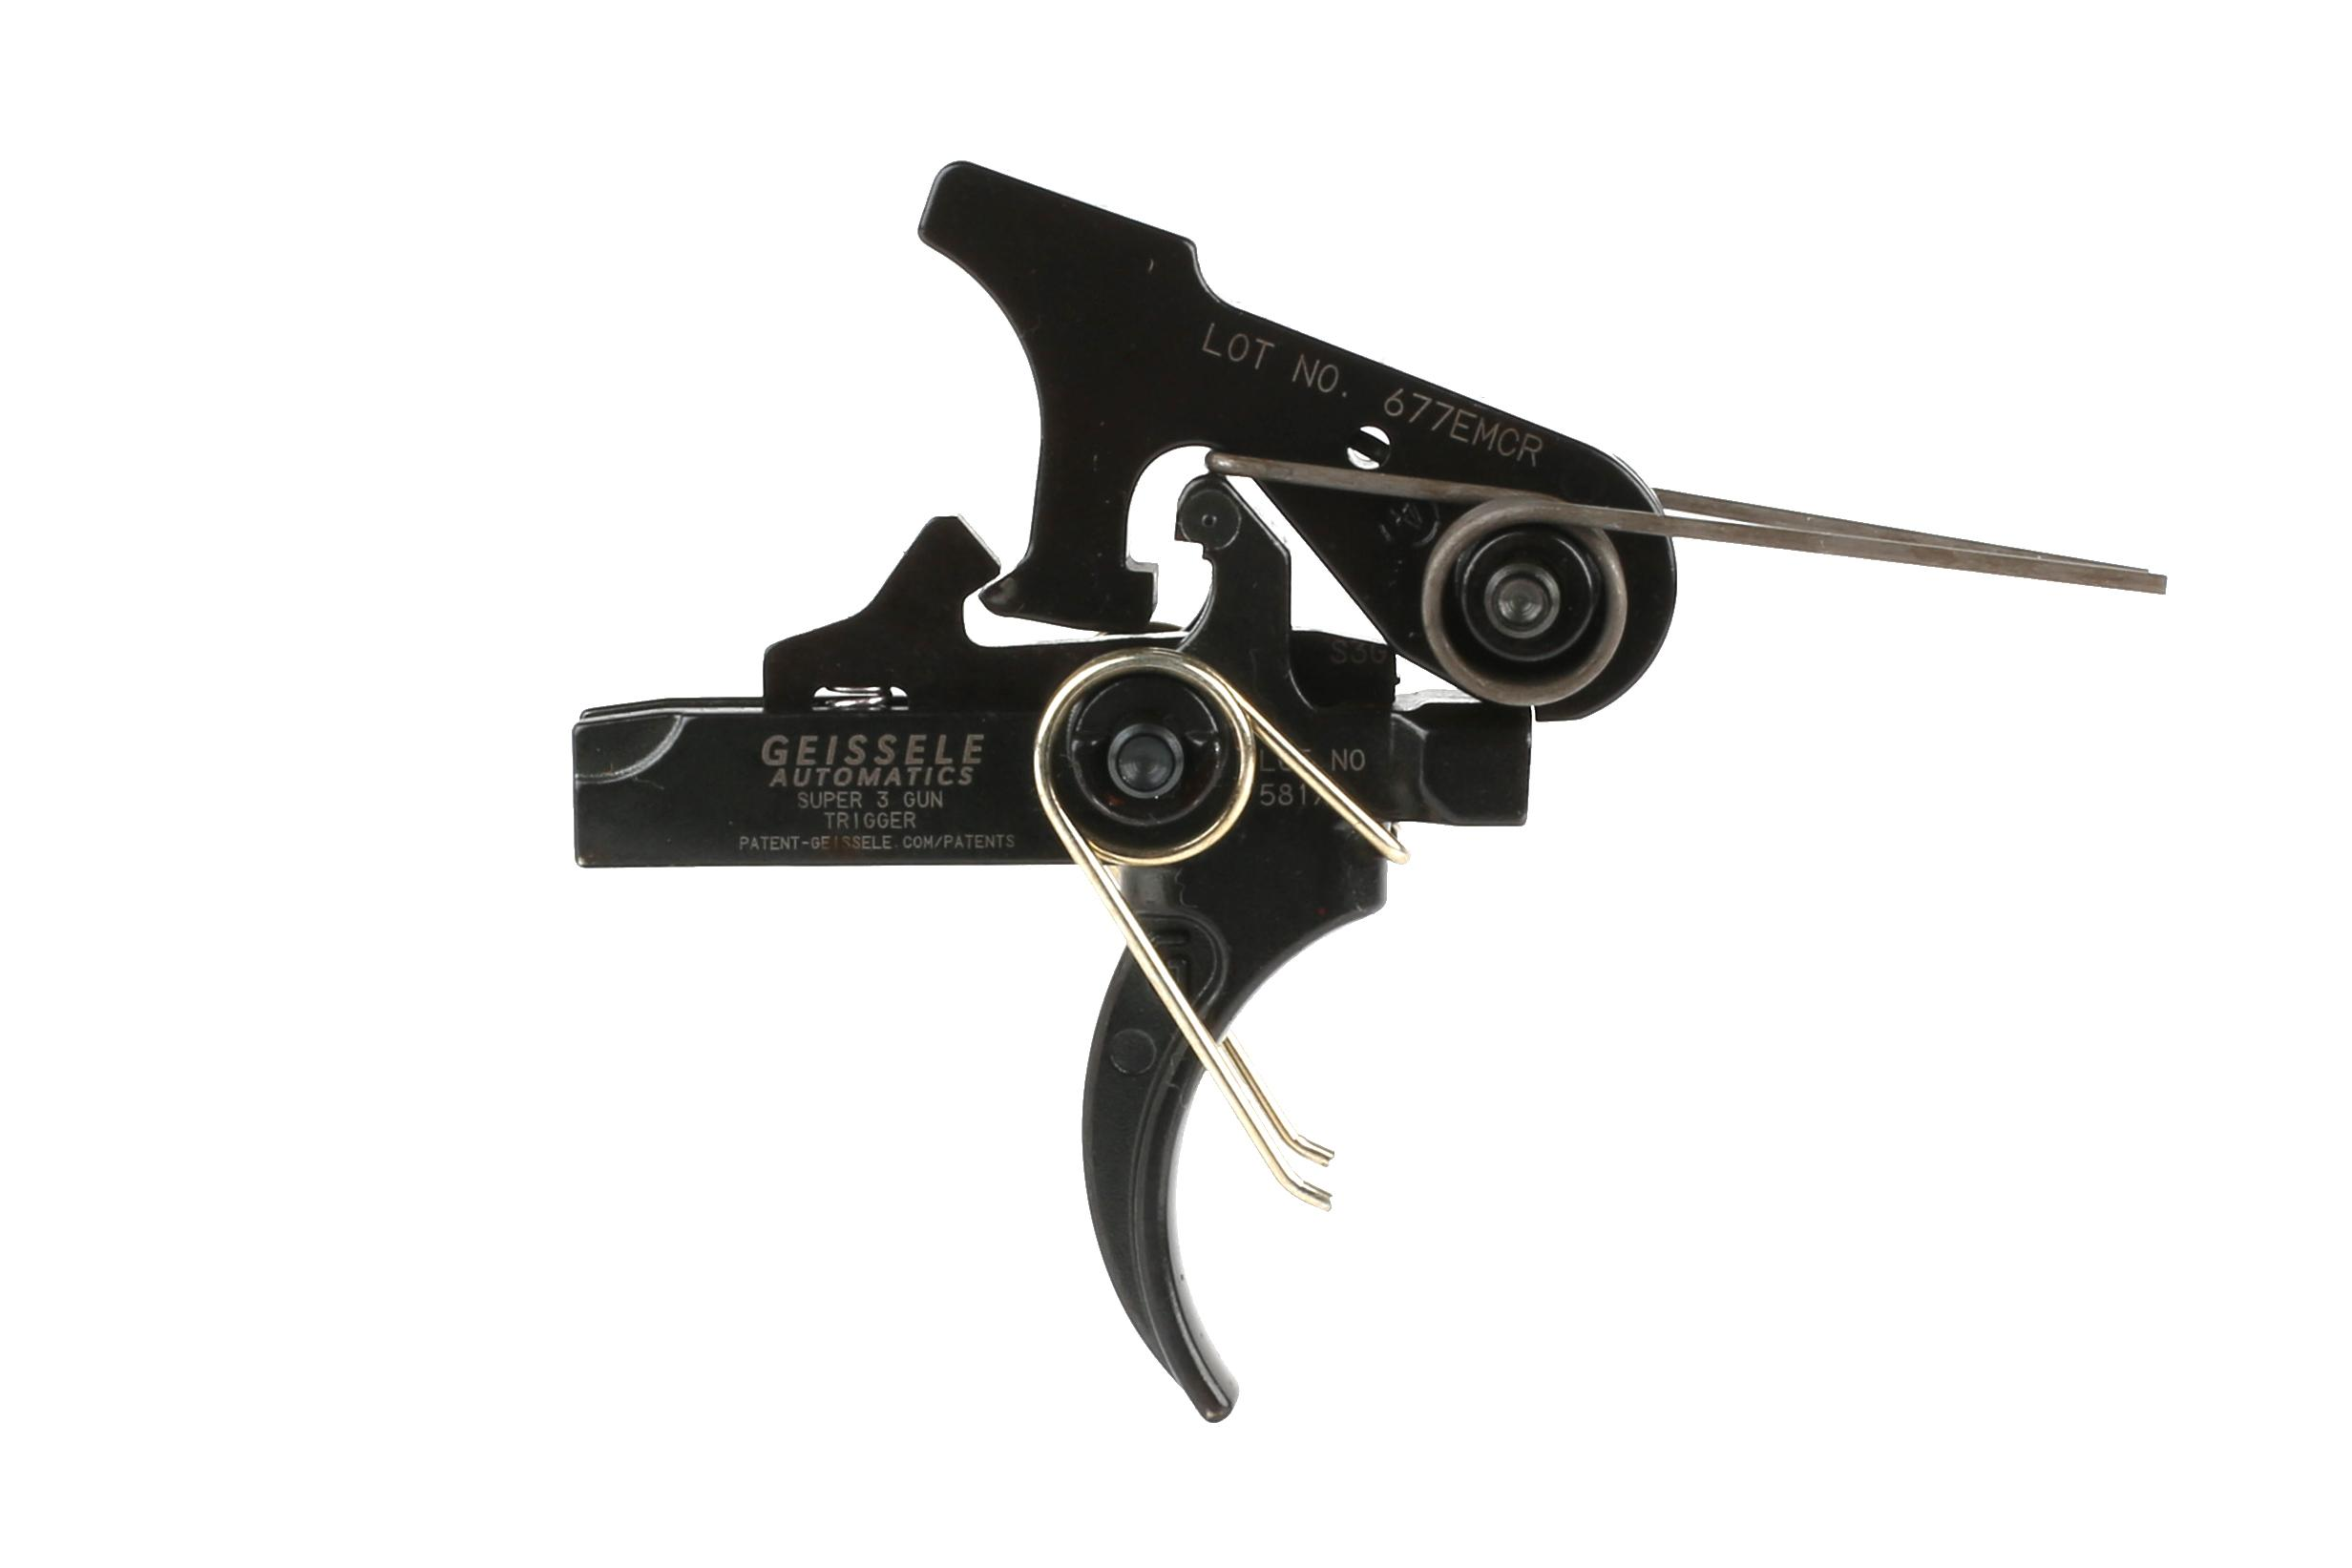 The Geissele Automatics Super 3 Gun S3G Hybrid AR15 Trigger features a curved trigger bow.